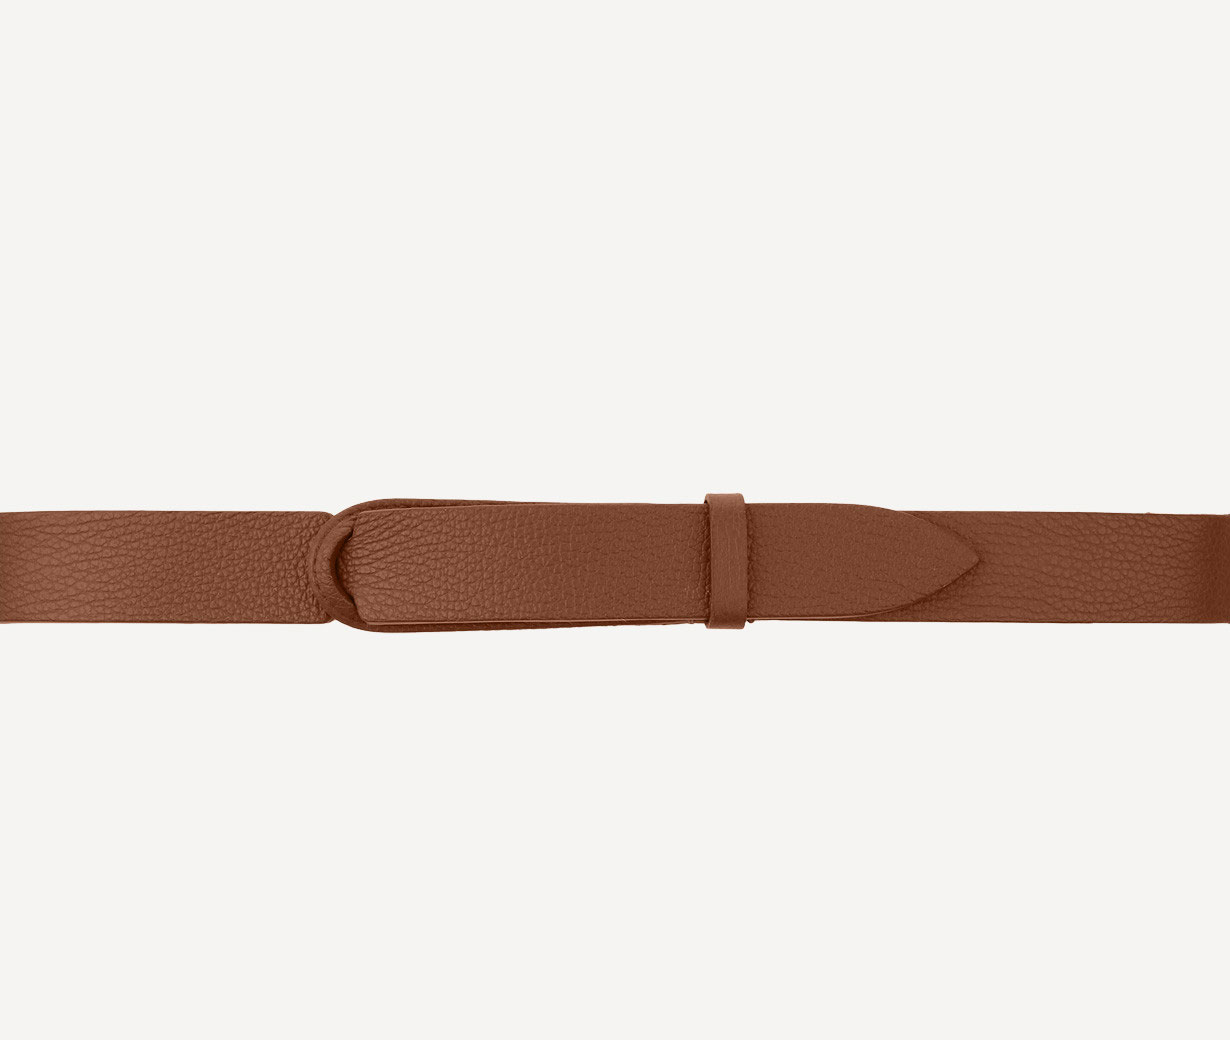 Orciani nobuckle brown micron belt ORCIANI   NB00394